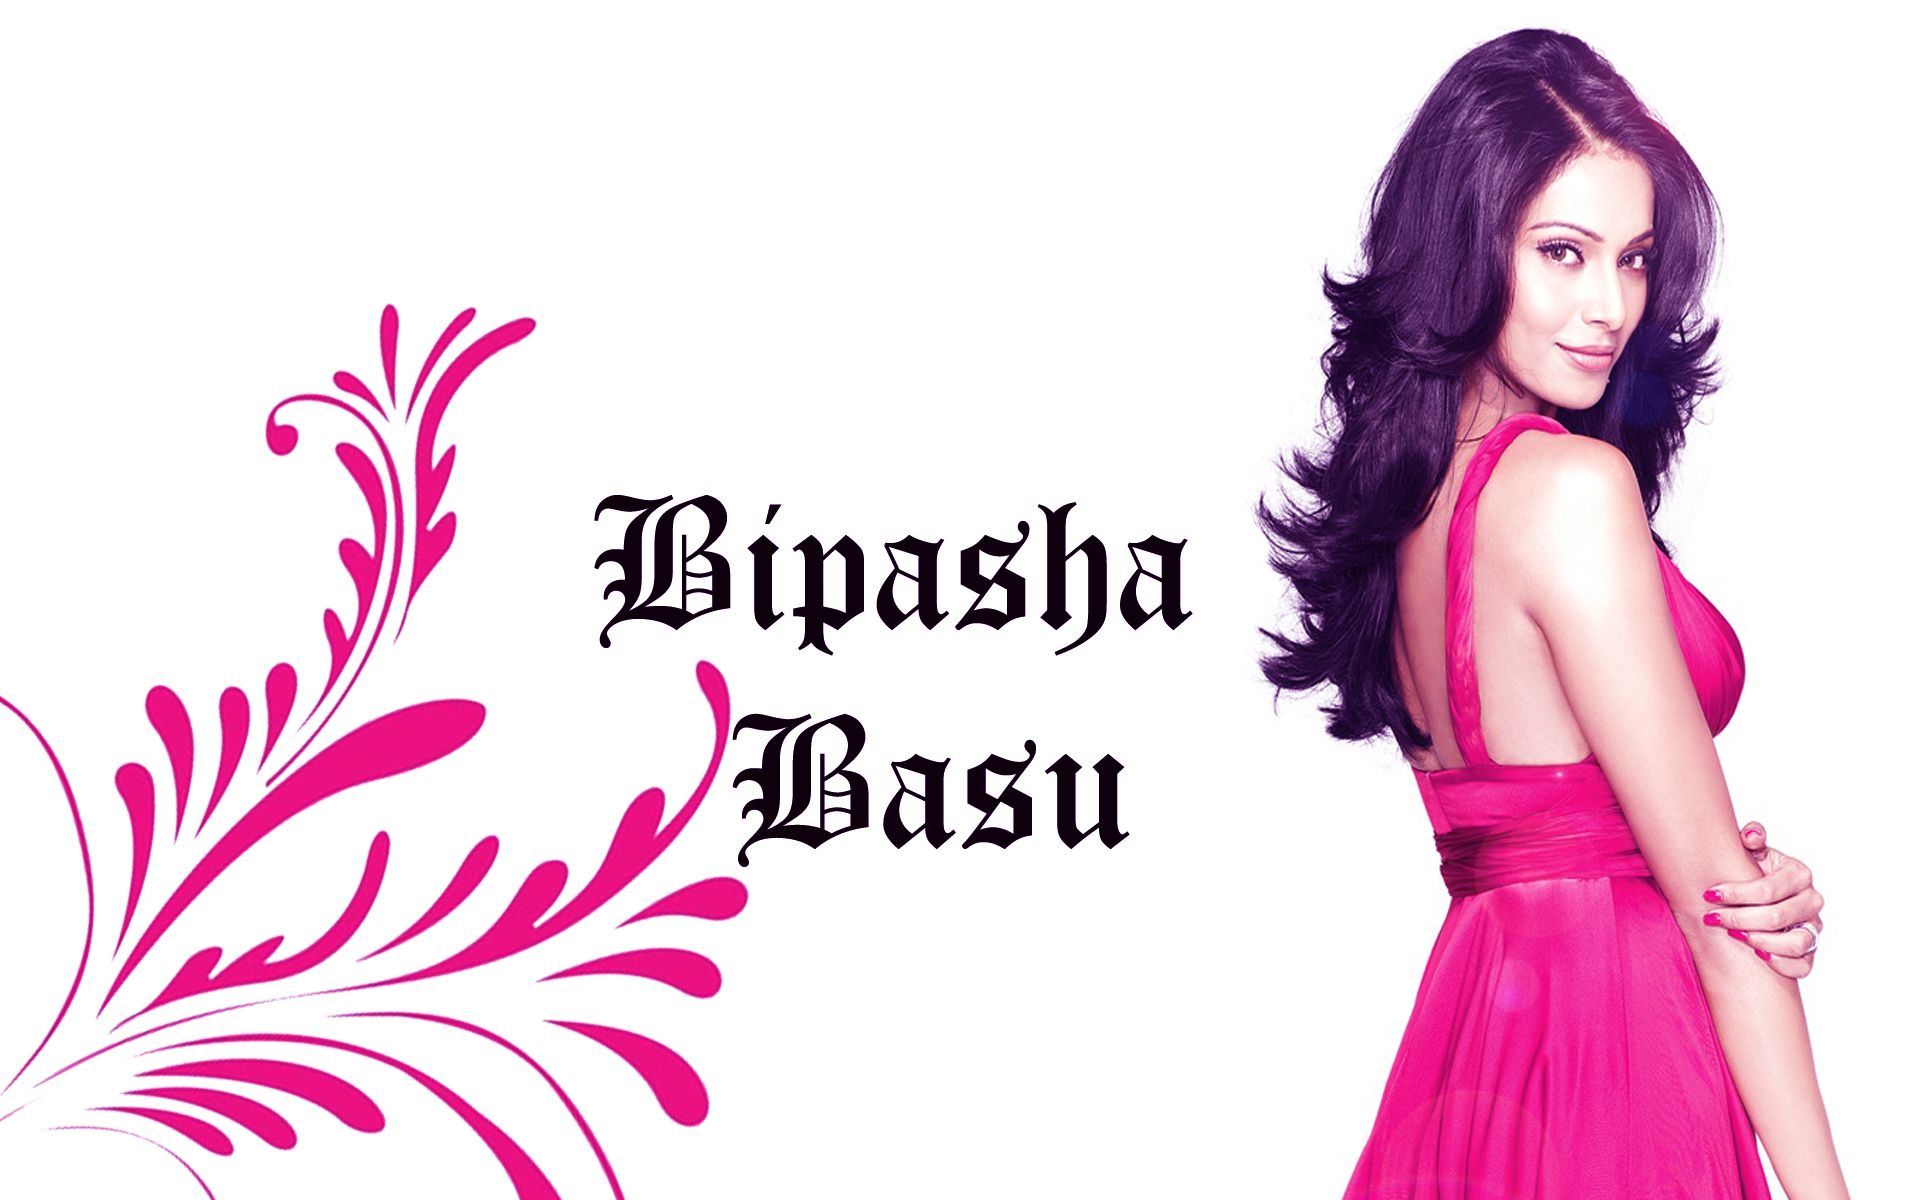 Bipasa Basunude Amazing bipasha basu hot wallpapers free download | bipasha basu hot new